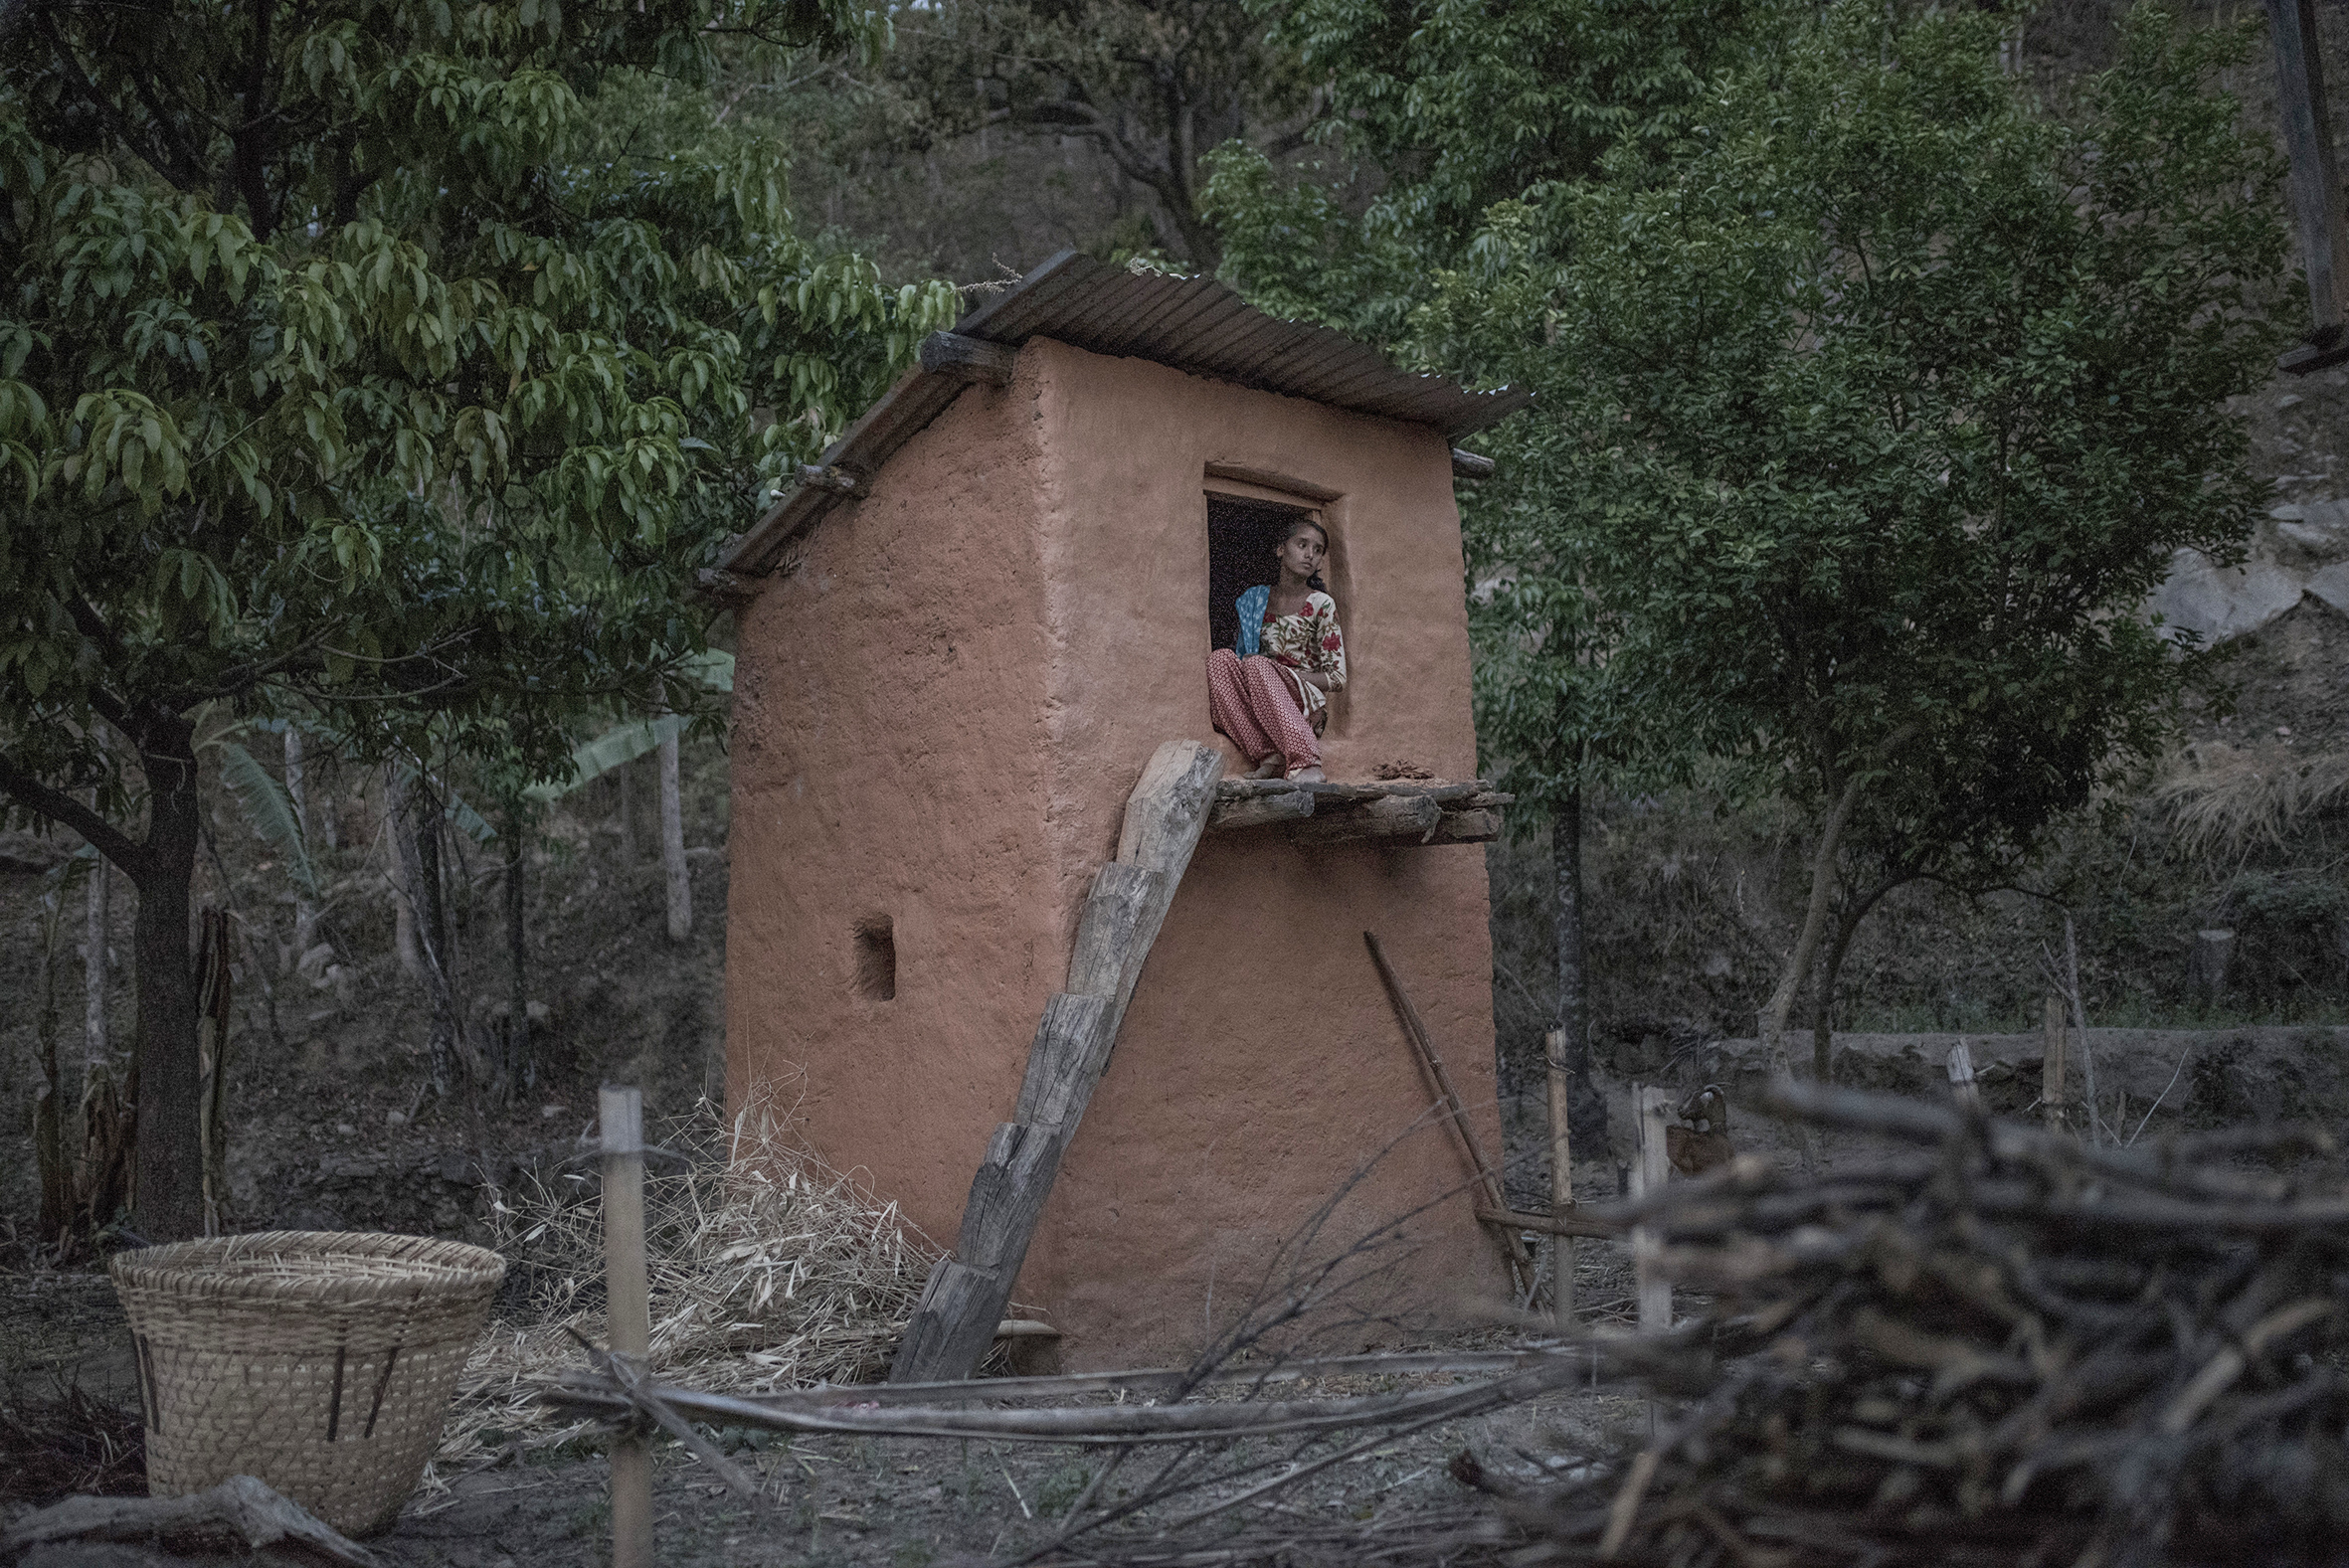 """Surekha, a 14-year-old girl from Achham district, poses for a portrait inside a """"goth"""" during her first period. This little mud house was built up several years ago in order to keep menstruating women away from their own houses, a tradition called """"Chhaupadi Partha"""". For the first time in Surekha's life, she will be considered impure and forced to live in this place for 7 days."""